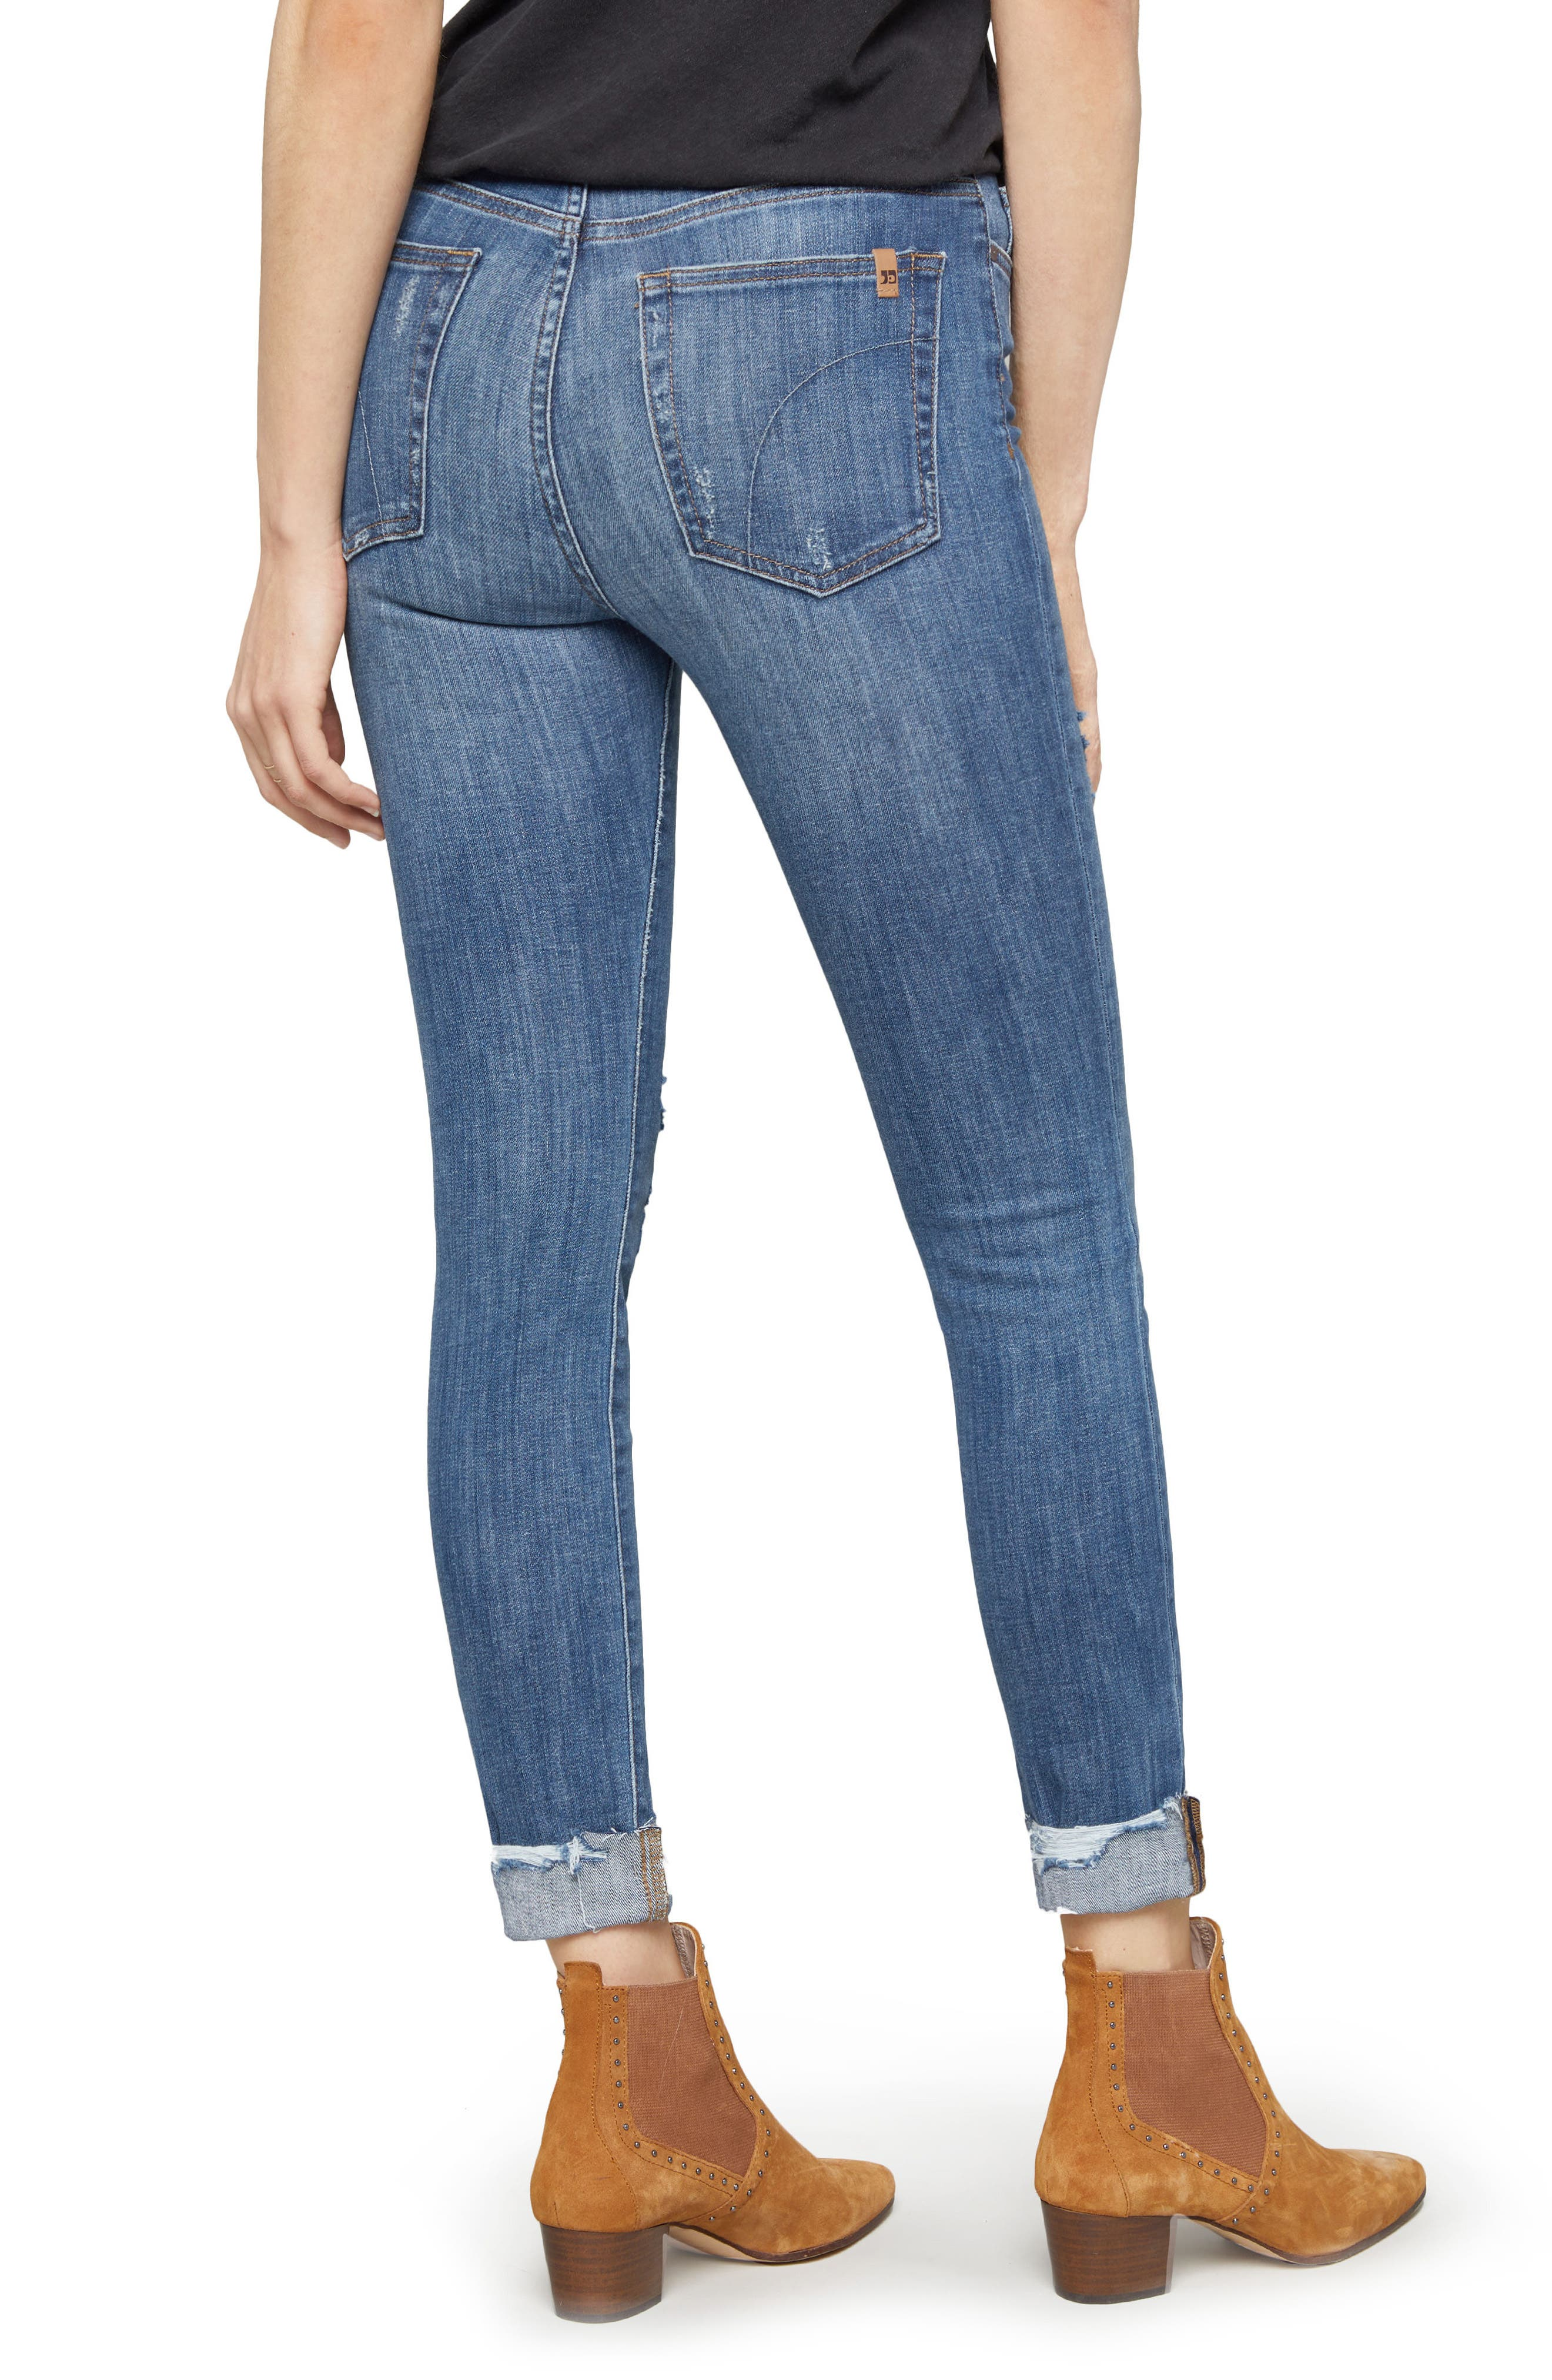 Charlie Crop Ripped Skinny Jeans,                             Alternate thumbnail 2, color,                             Leor